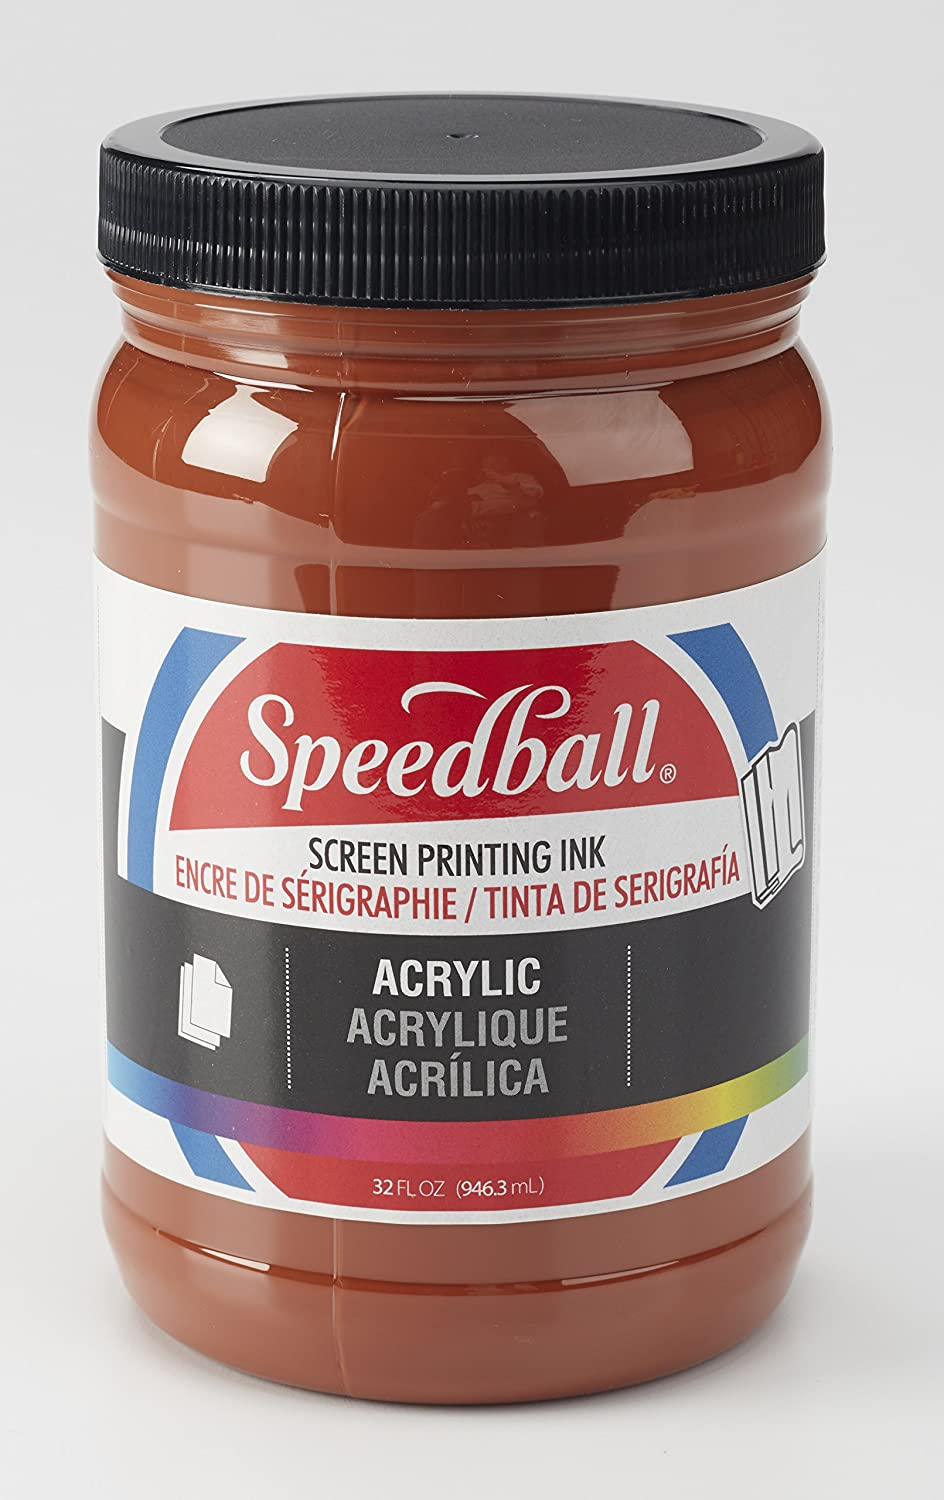 Speedball 004645 Acrylic Screen Printing Ink, 32 fl. oz, Fire Red